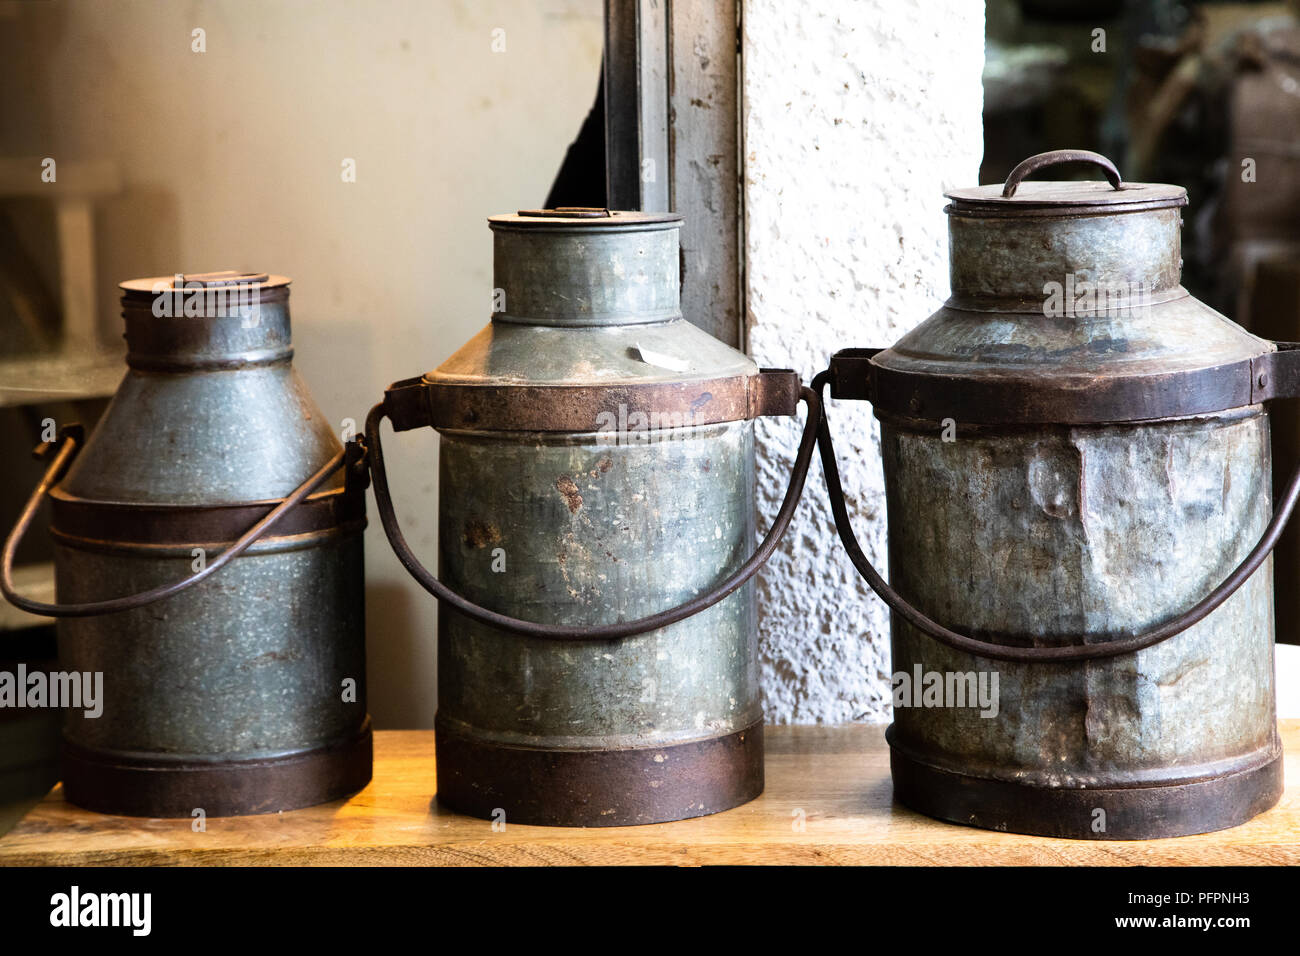 Decorative Milk Urn Display Of 3 Decorative Metal Milk Churns Stock Photo